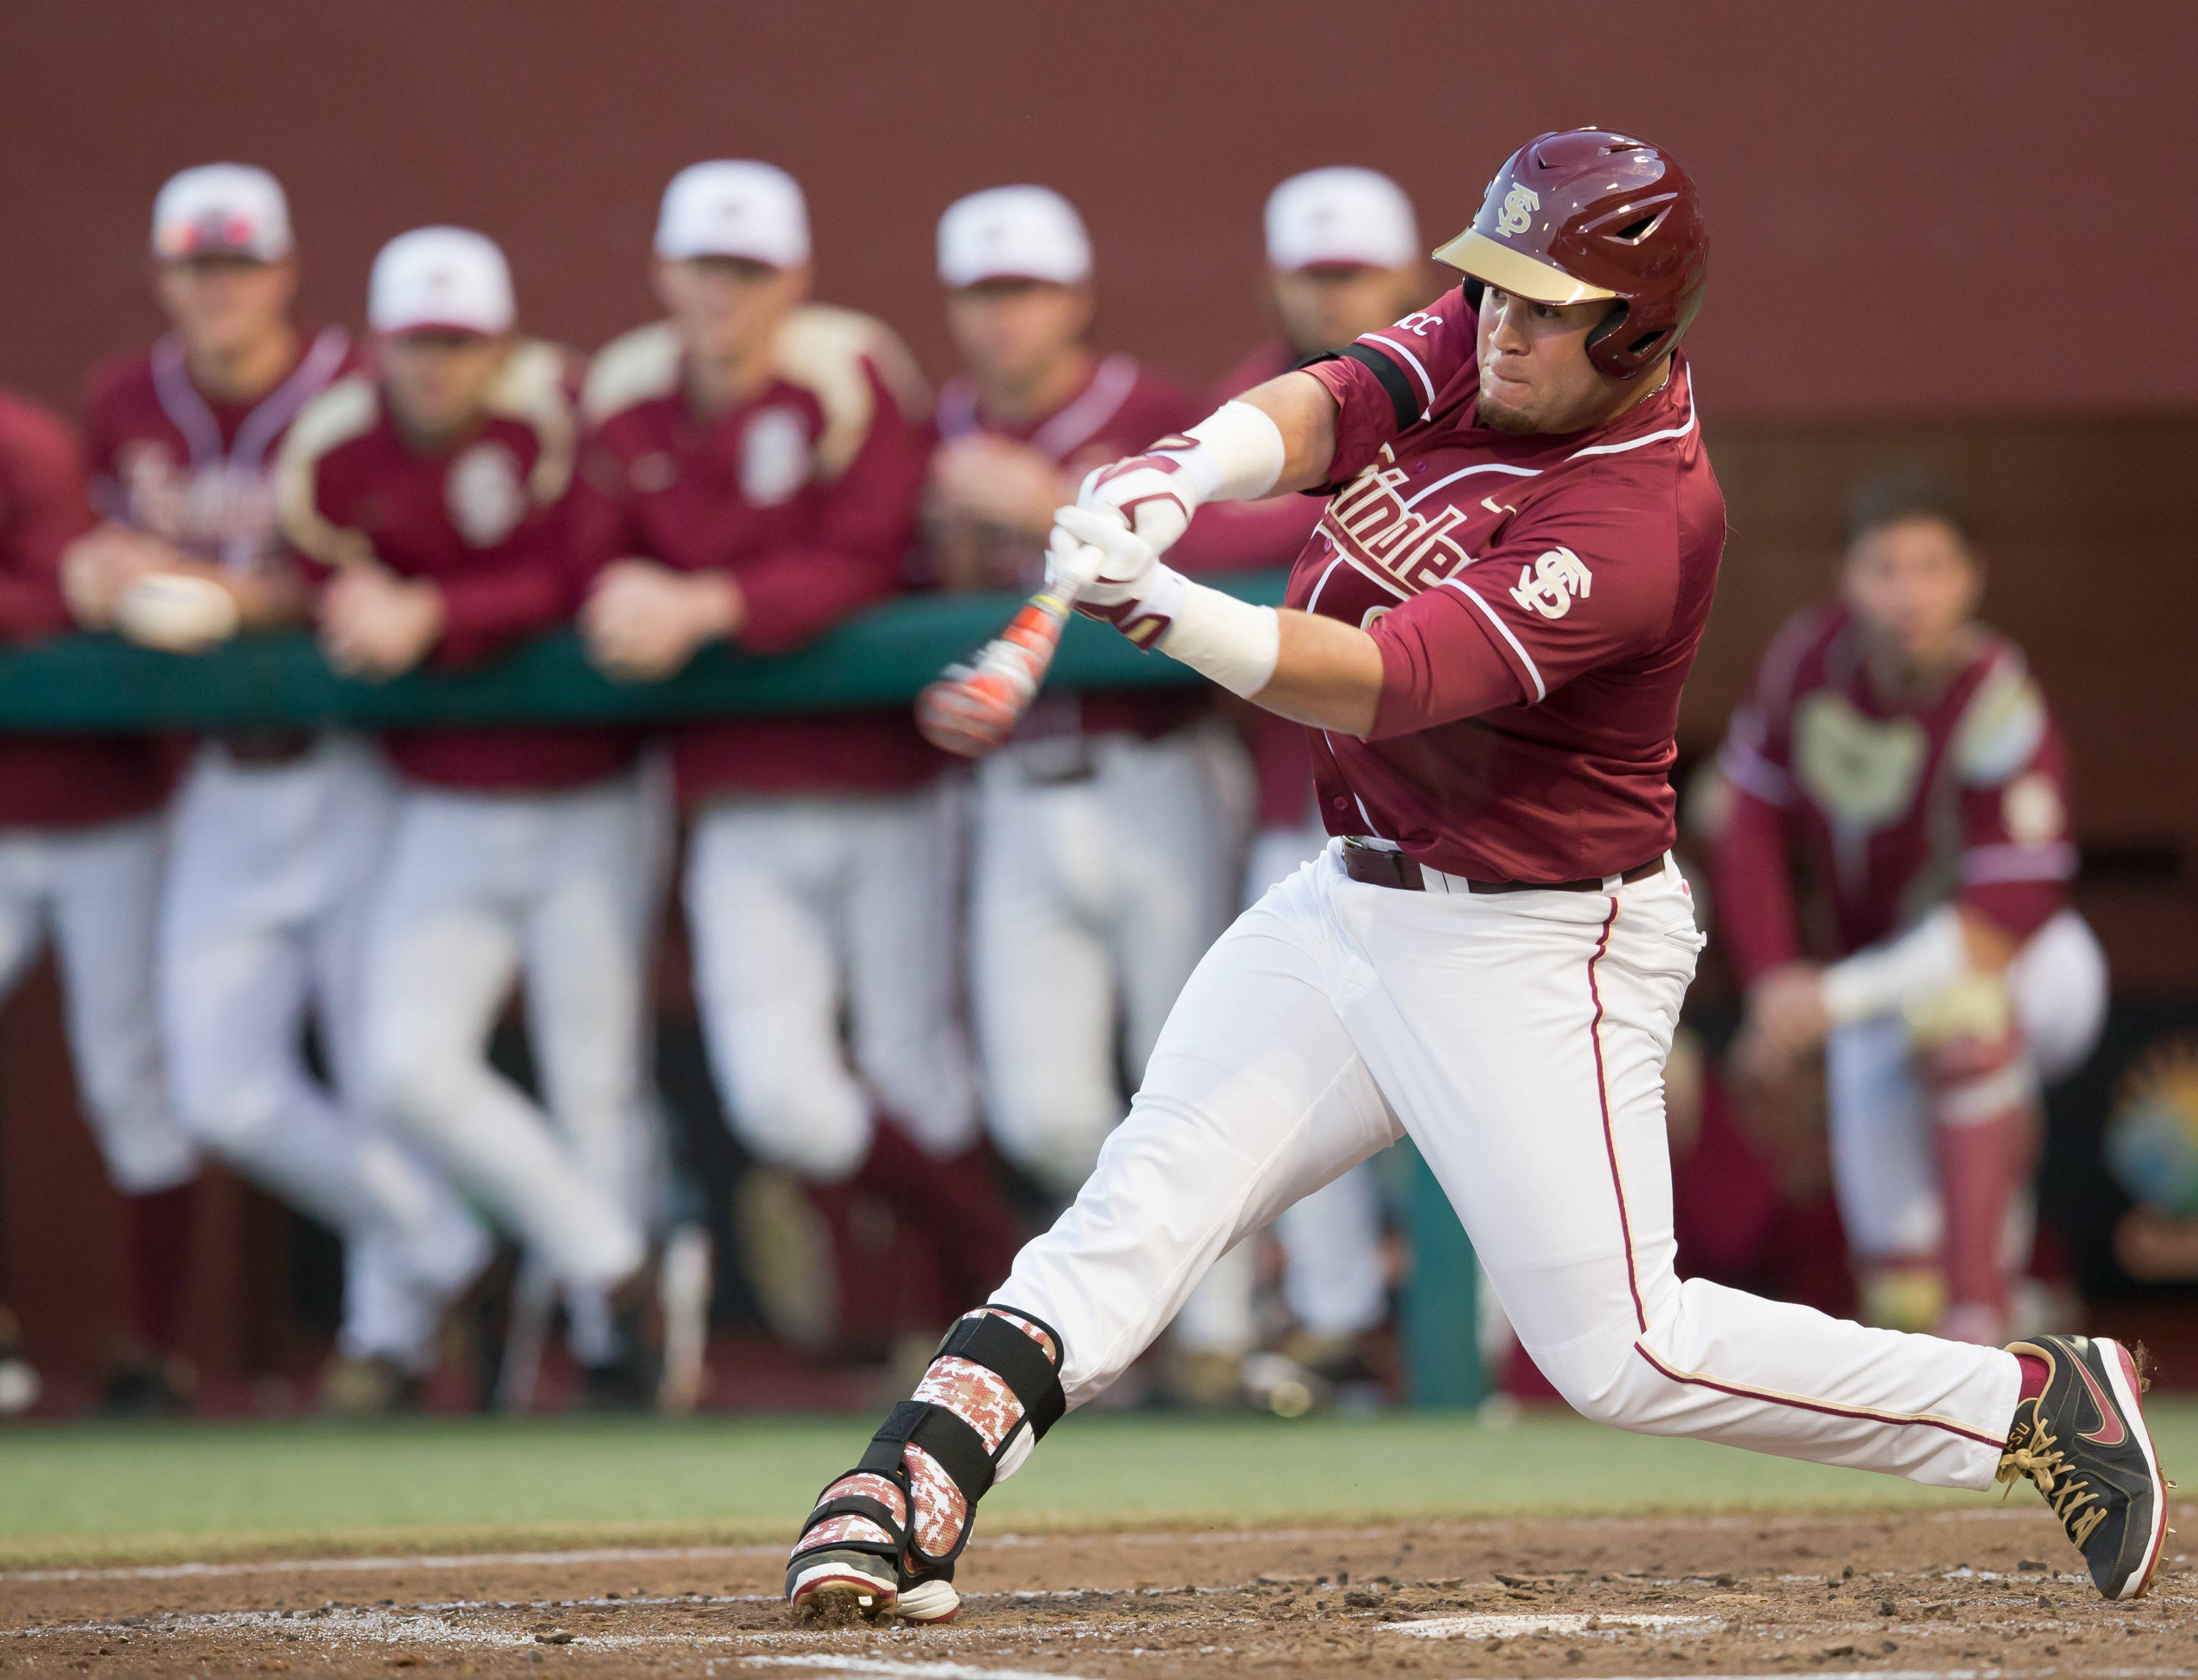 DJ Stewart (8) drove in FSU's 1st run and had 4 hits including 2 doubles.